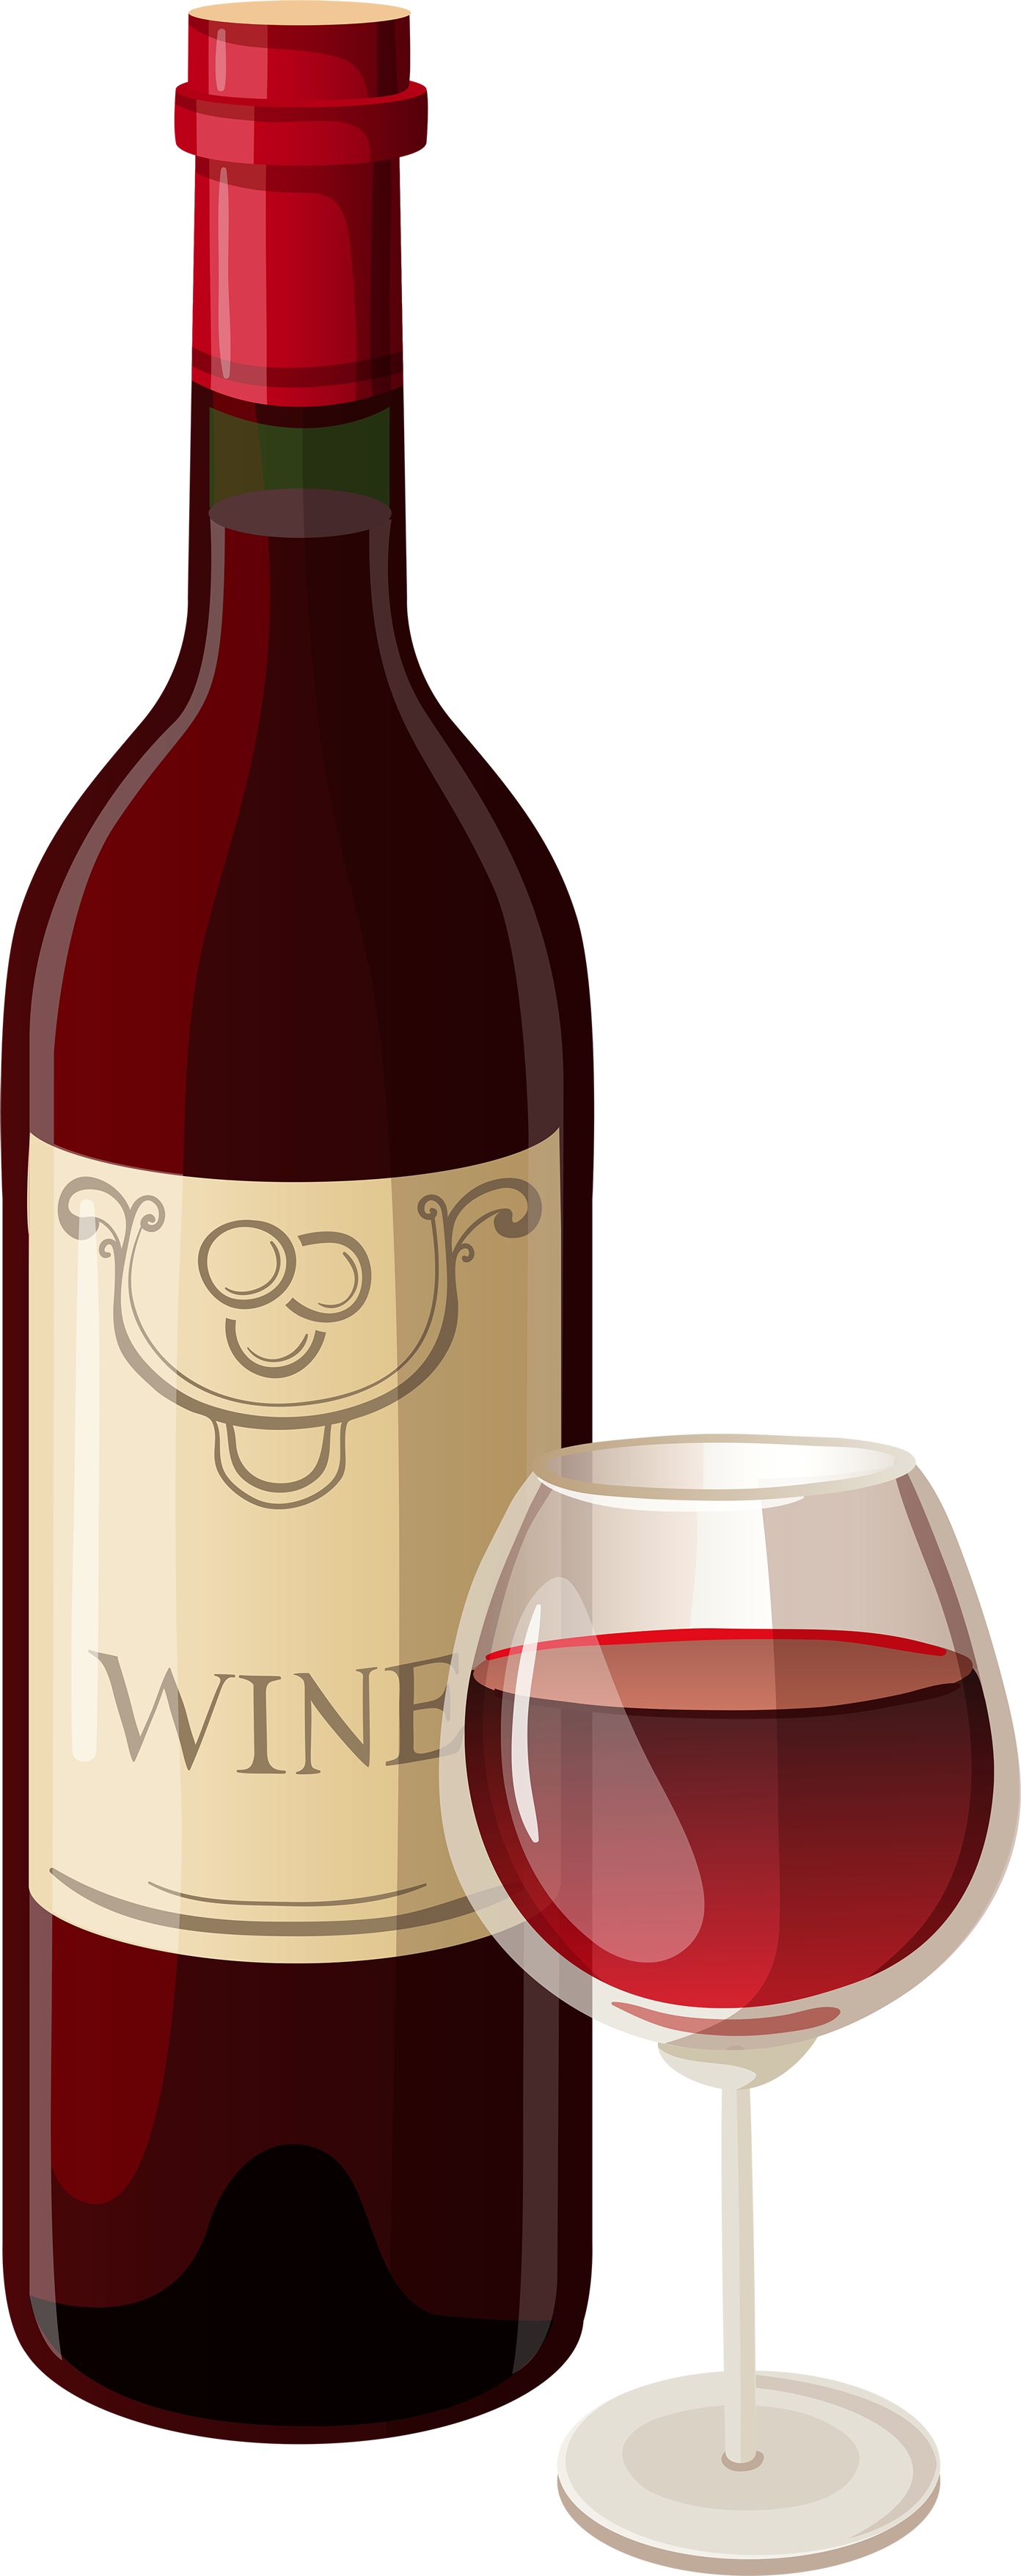 PNG Wine Bottle And Glass - 53498